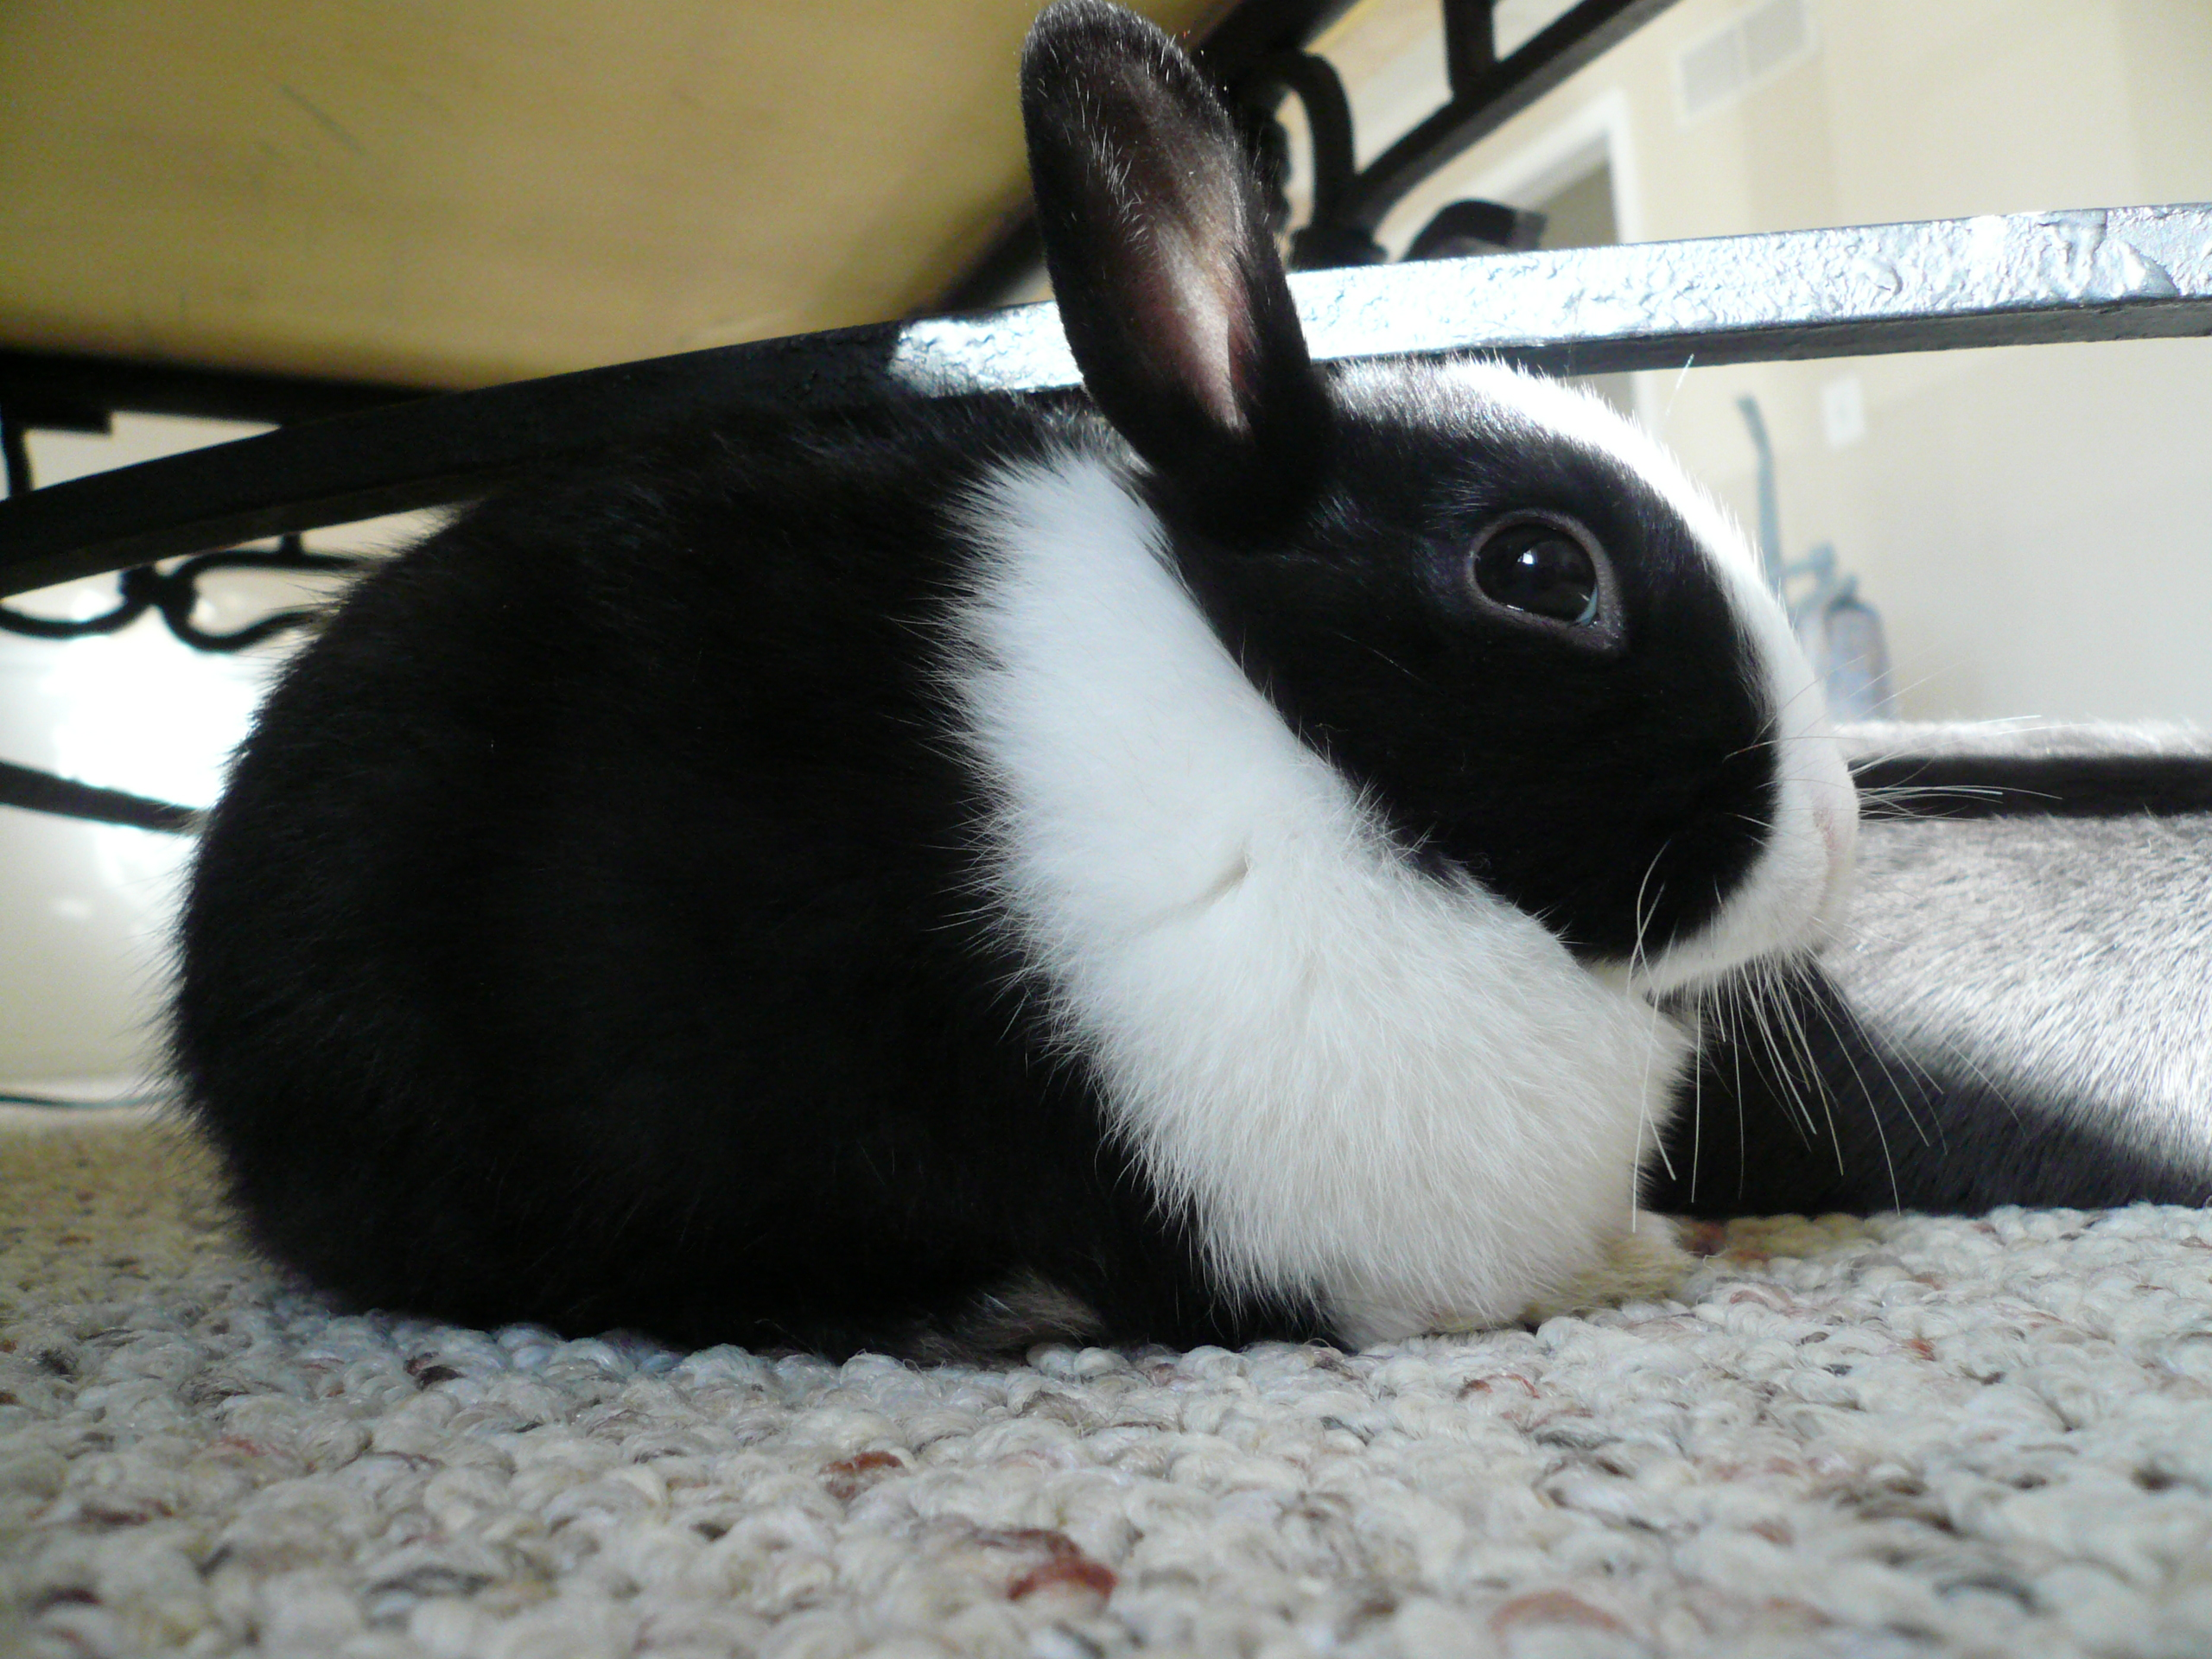 Cute black and white bunny resting. | Things I Like ...